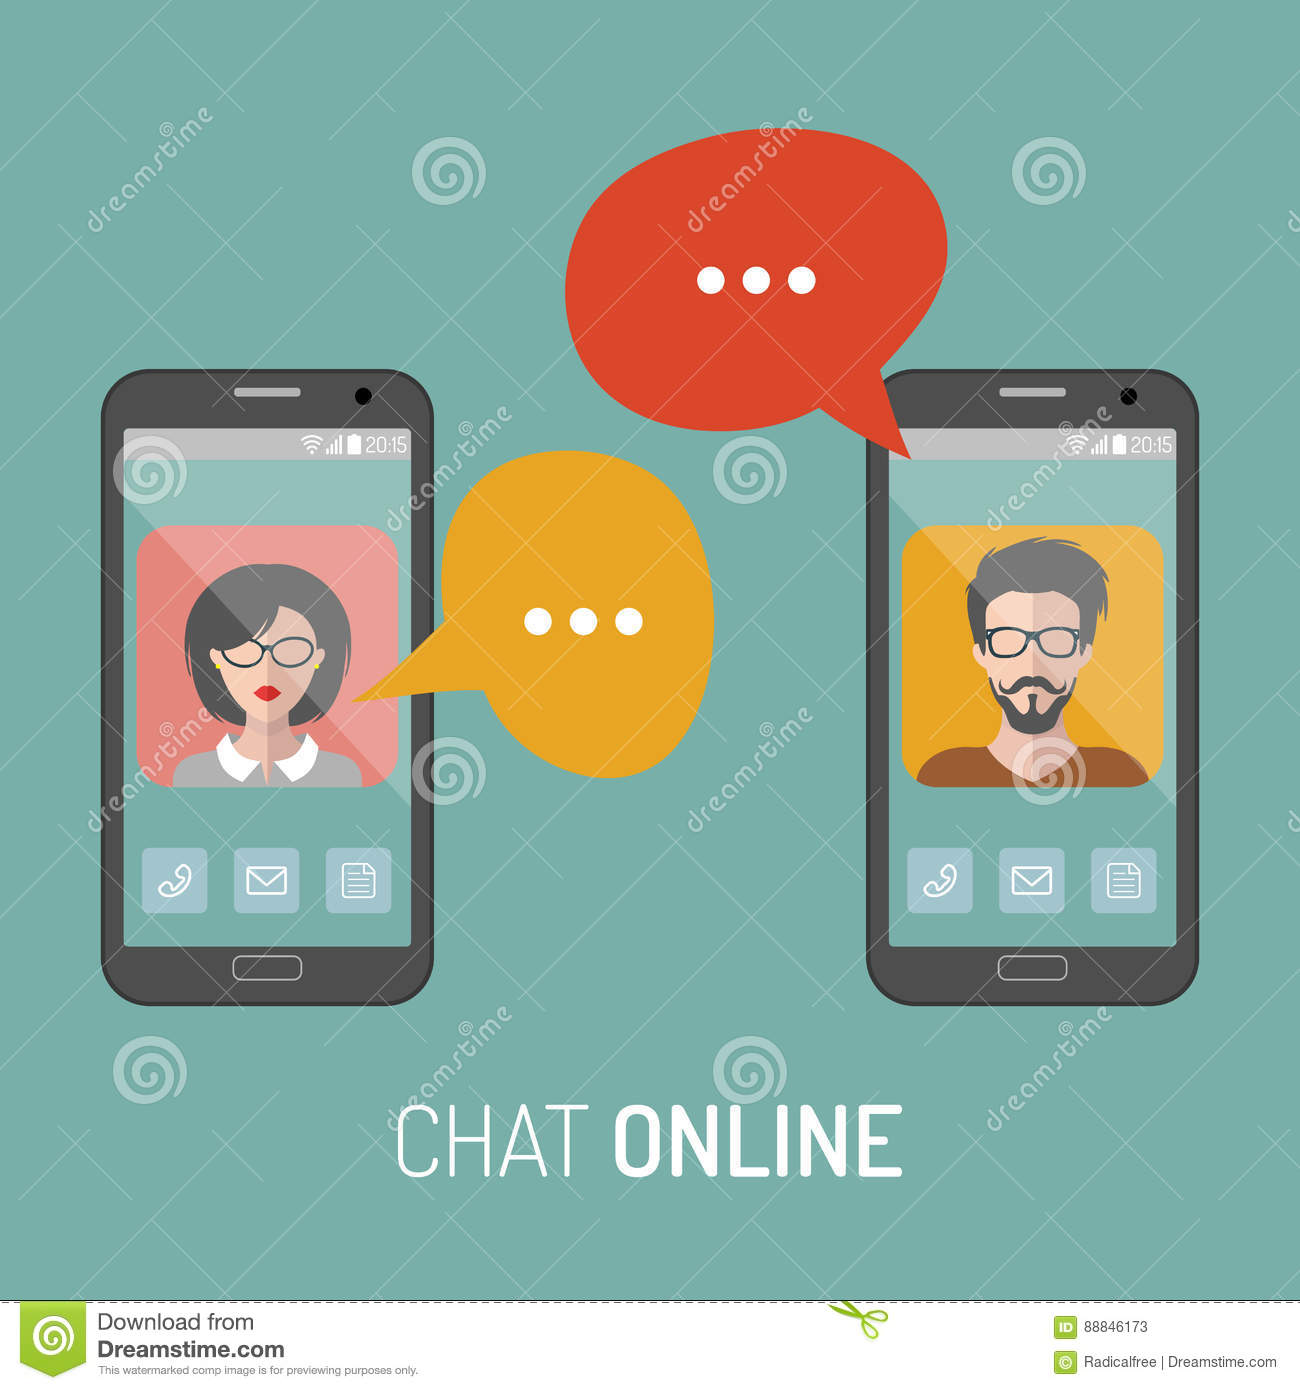 Online dating chat between a man and woman